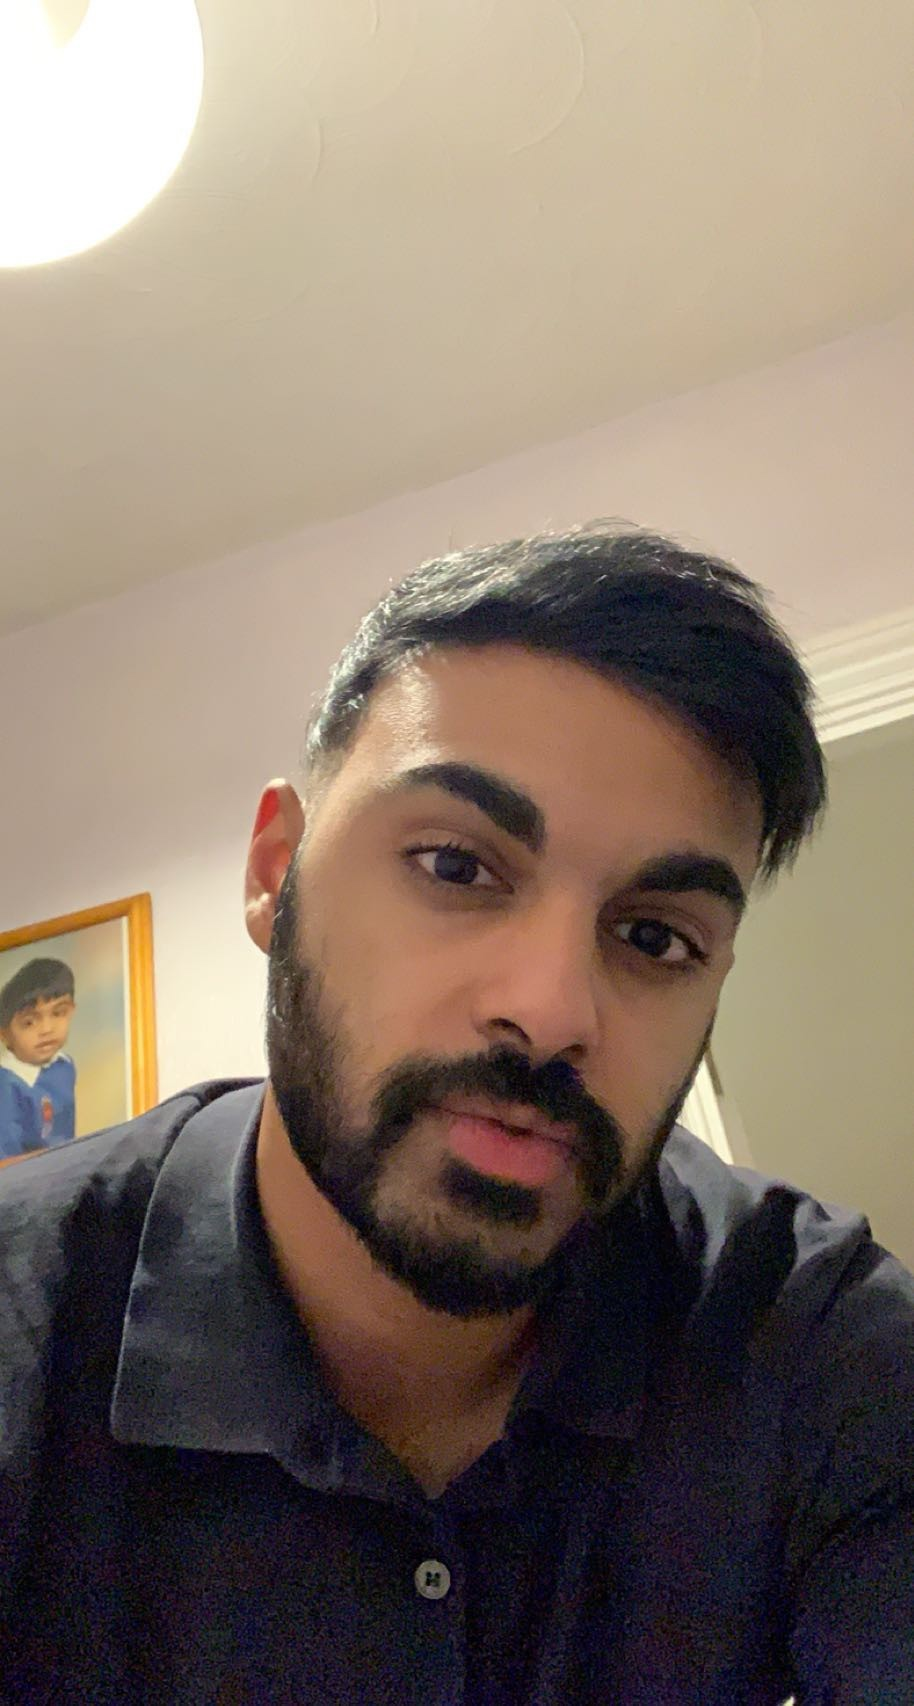 Profile picture of UK2021217649